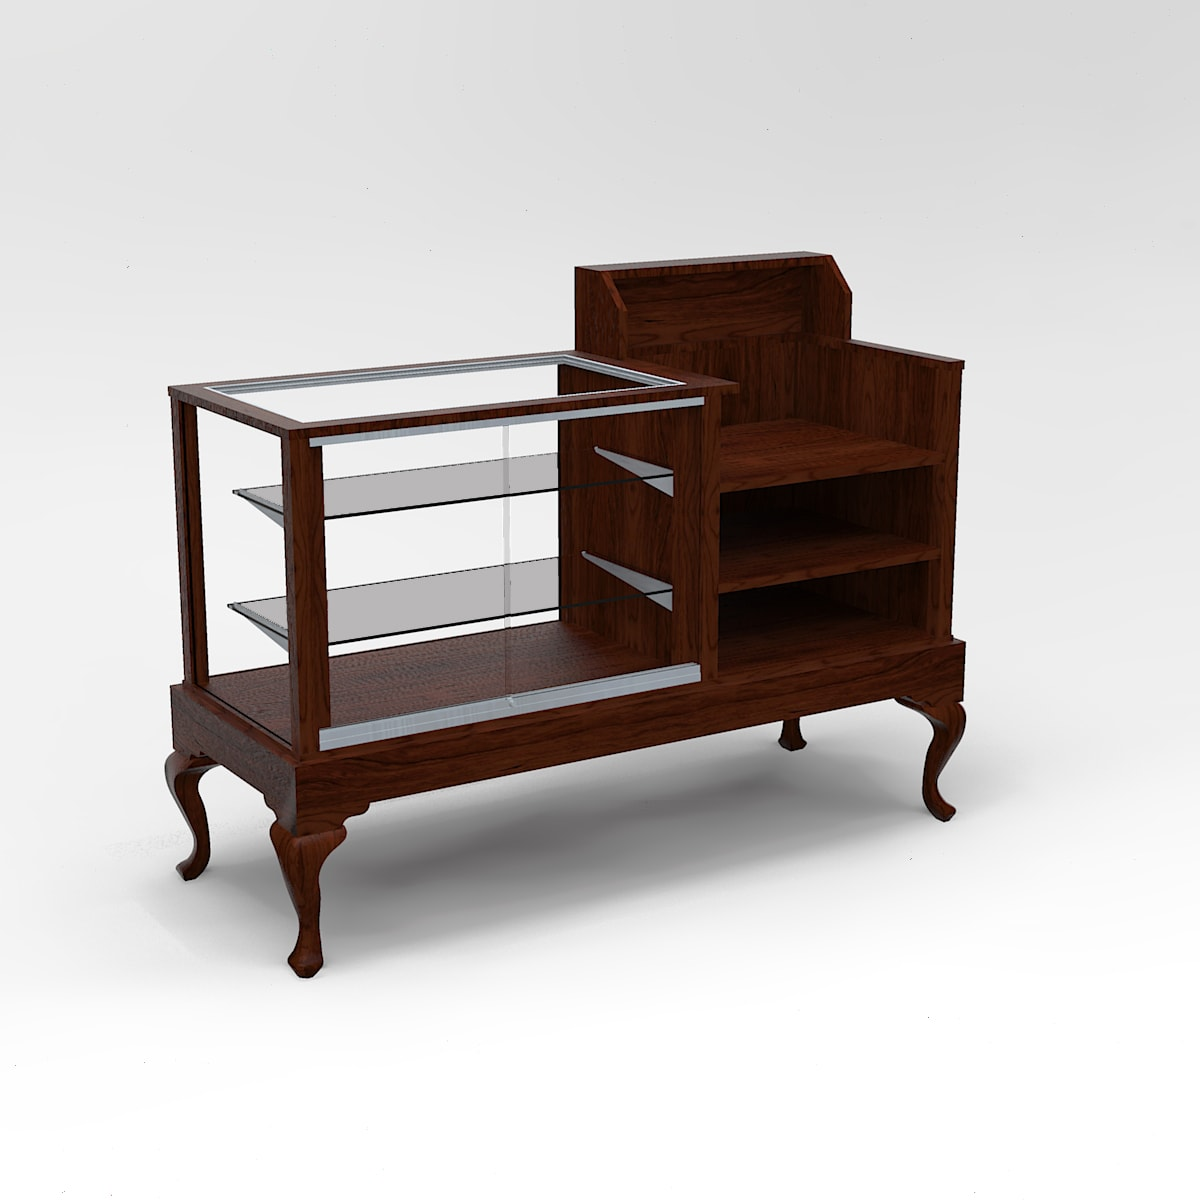 60 Inch Full Vision Queen Anne Leg Cash Wrap Display Case To Purchase